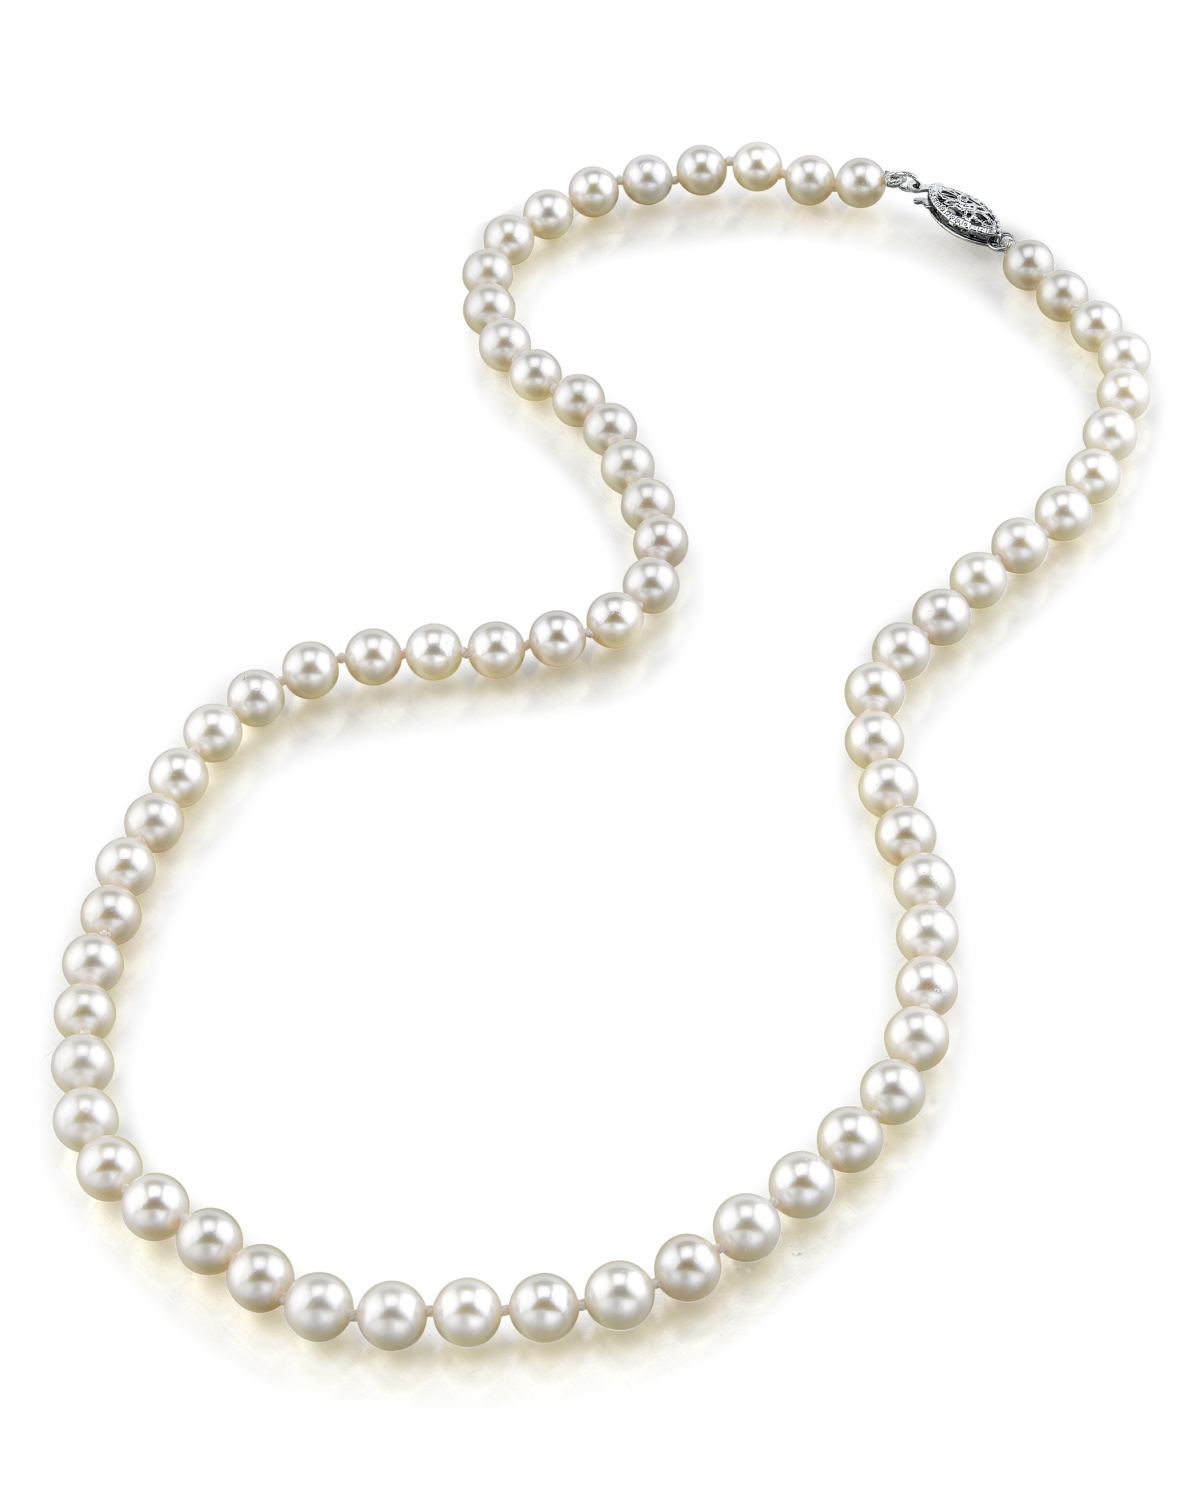 Pearl clipart chain necklace Necklace Art Free — Images